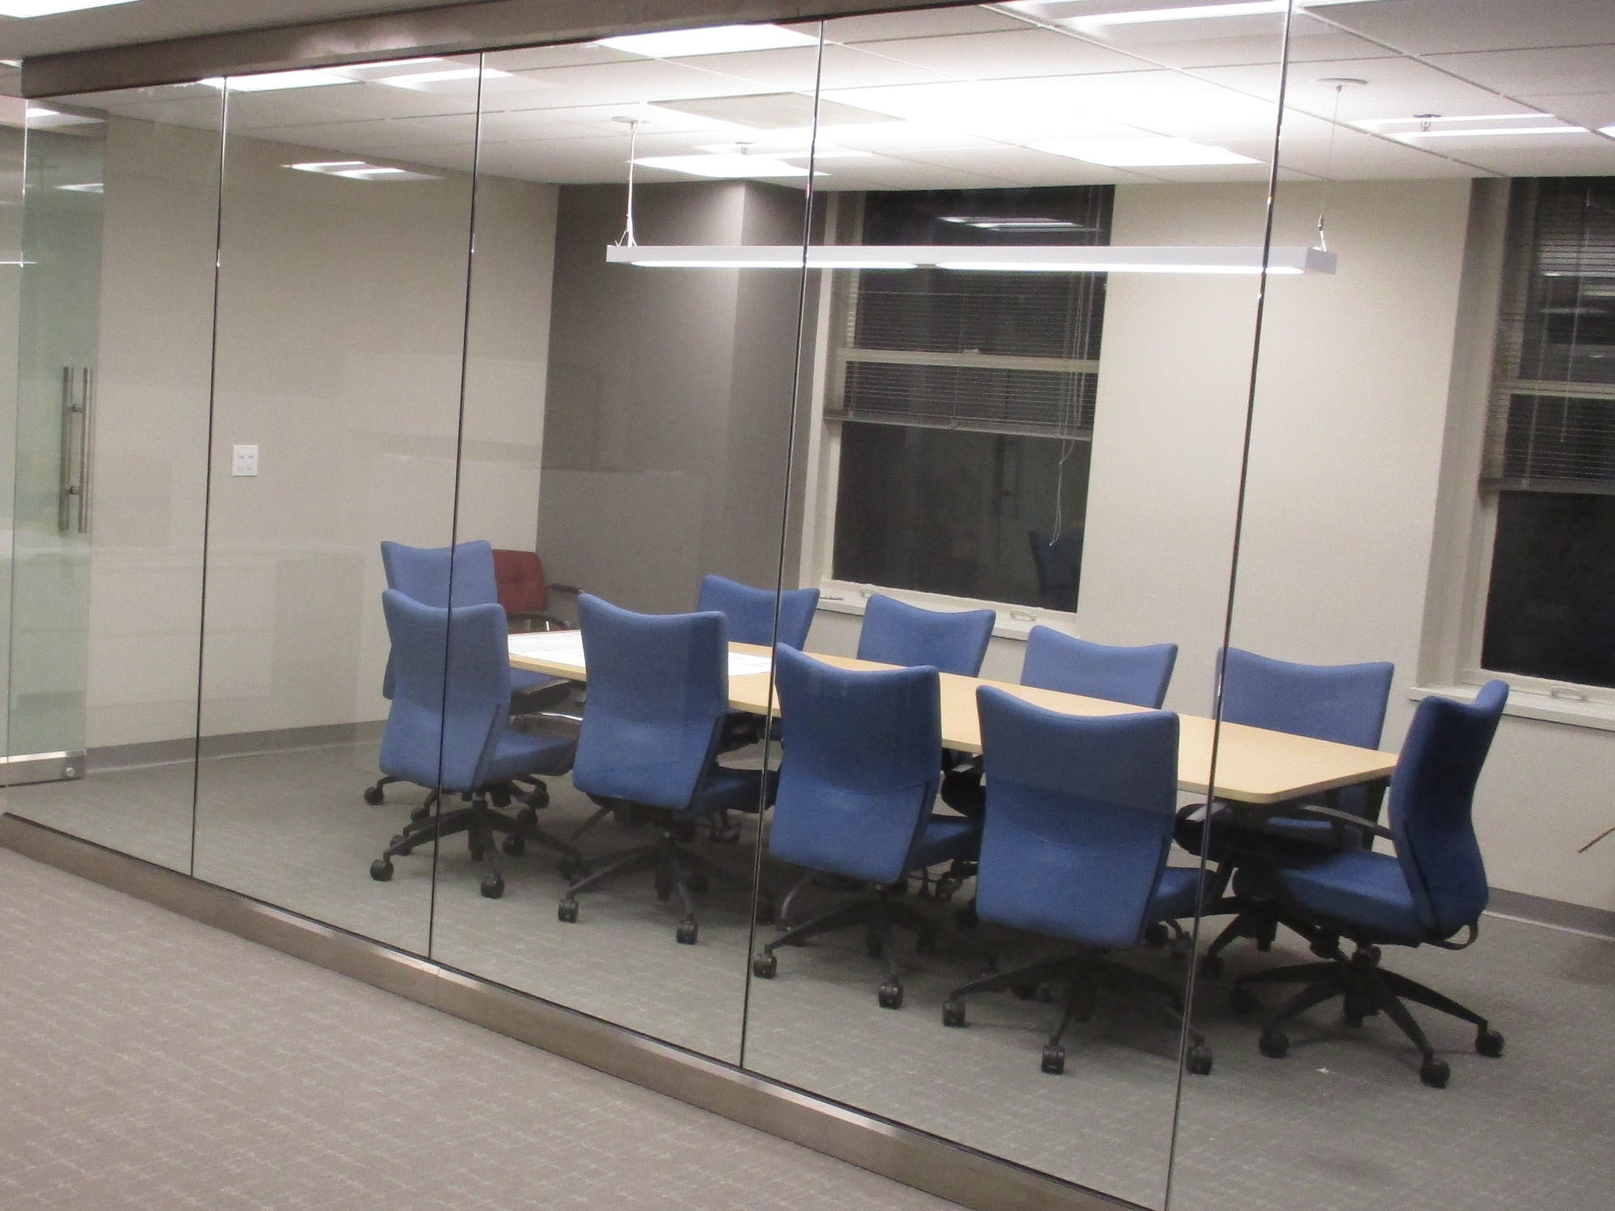 facility-planning-fm-services-facility-design-commercial-interiors.jpg